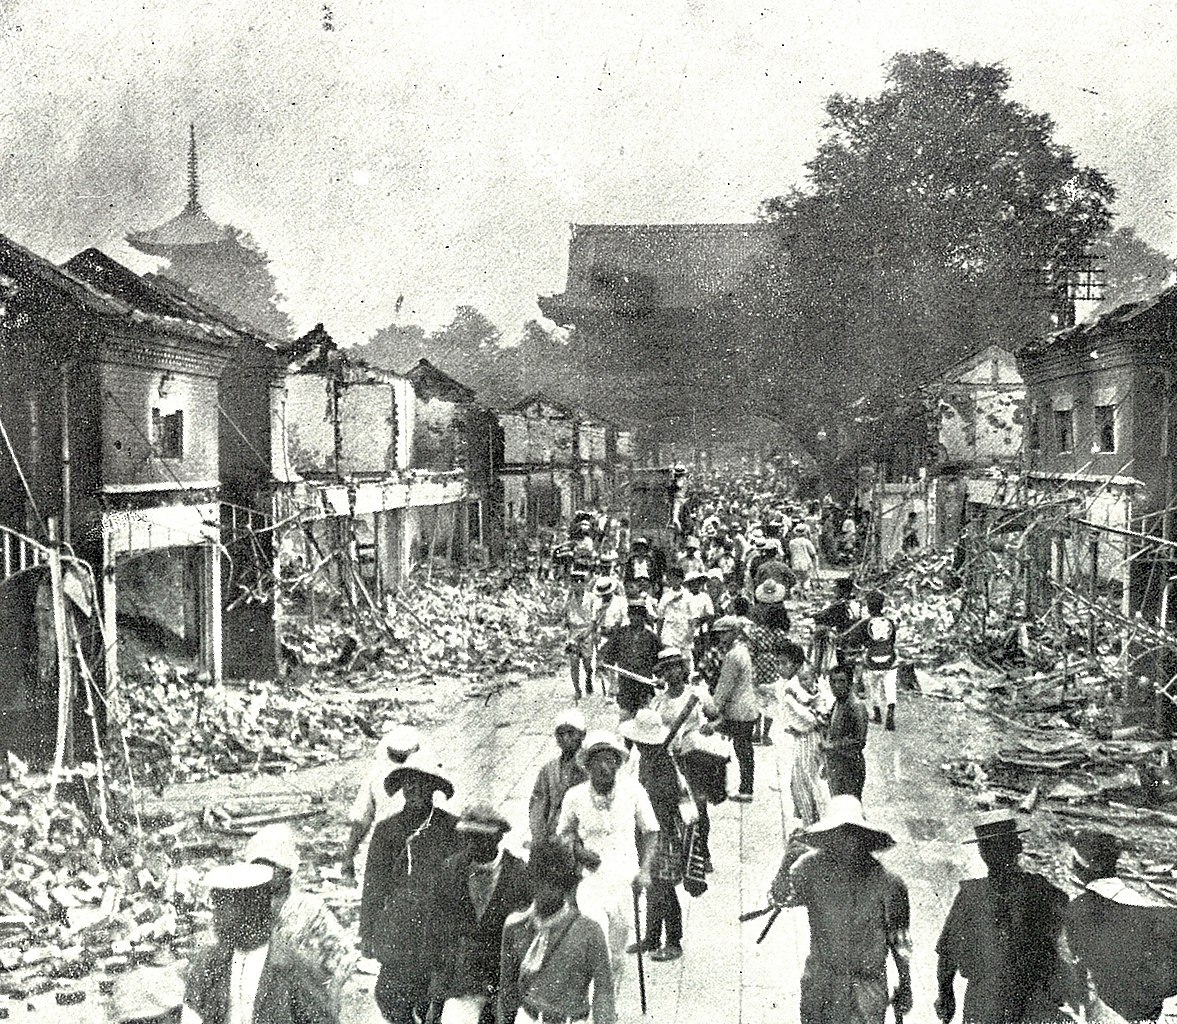 September 1 – The Great Kantō earthquake devastates Tokyo and Yokohama, killing an estimated 142,807 people